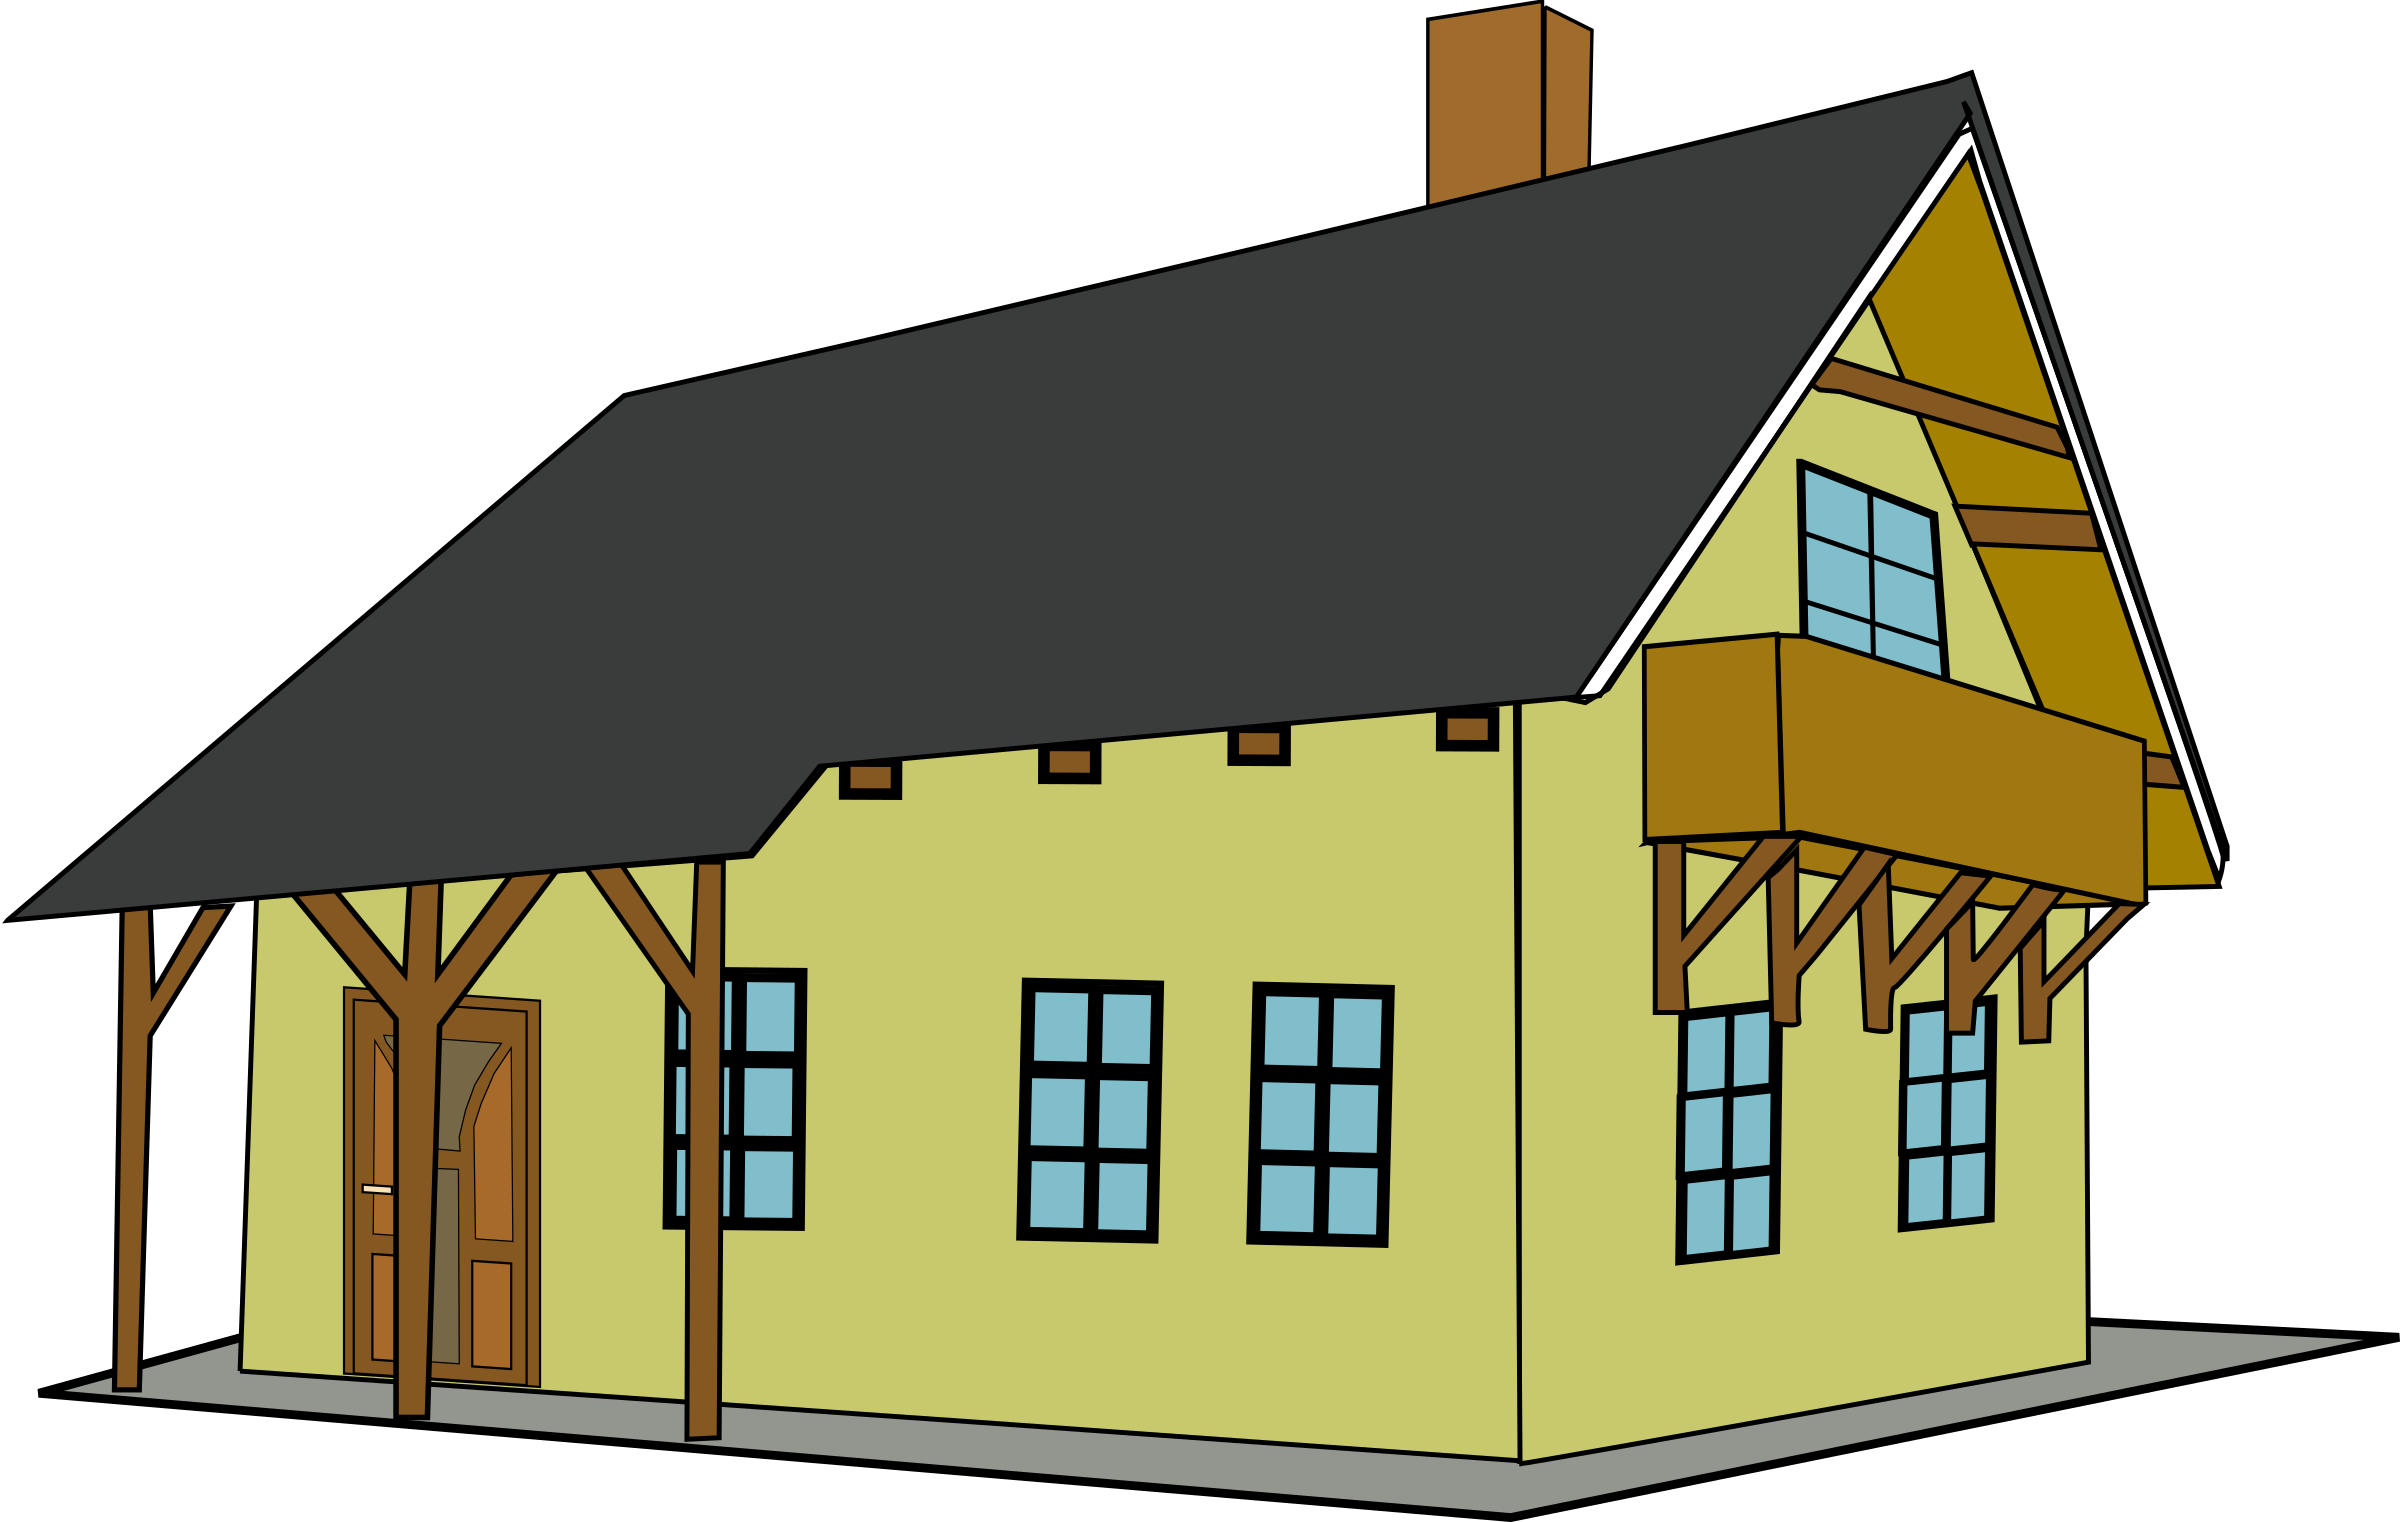 House cartoon png. Icons free and downloads